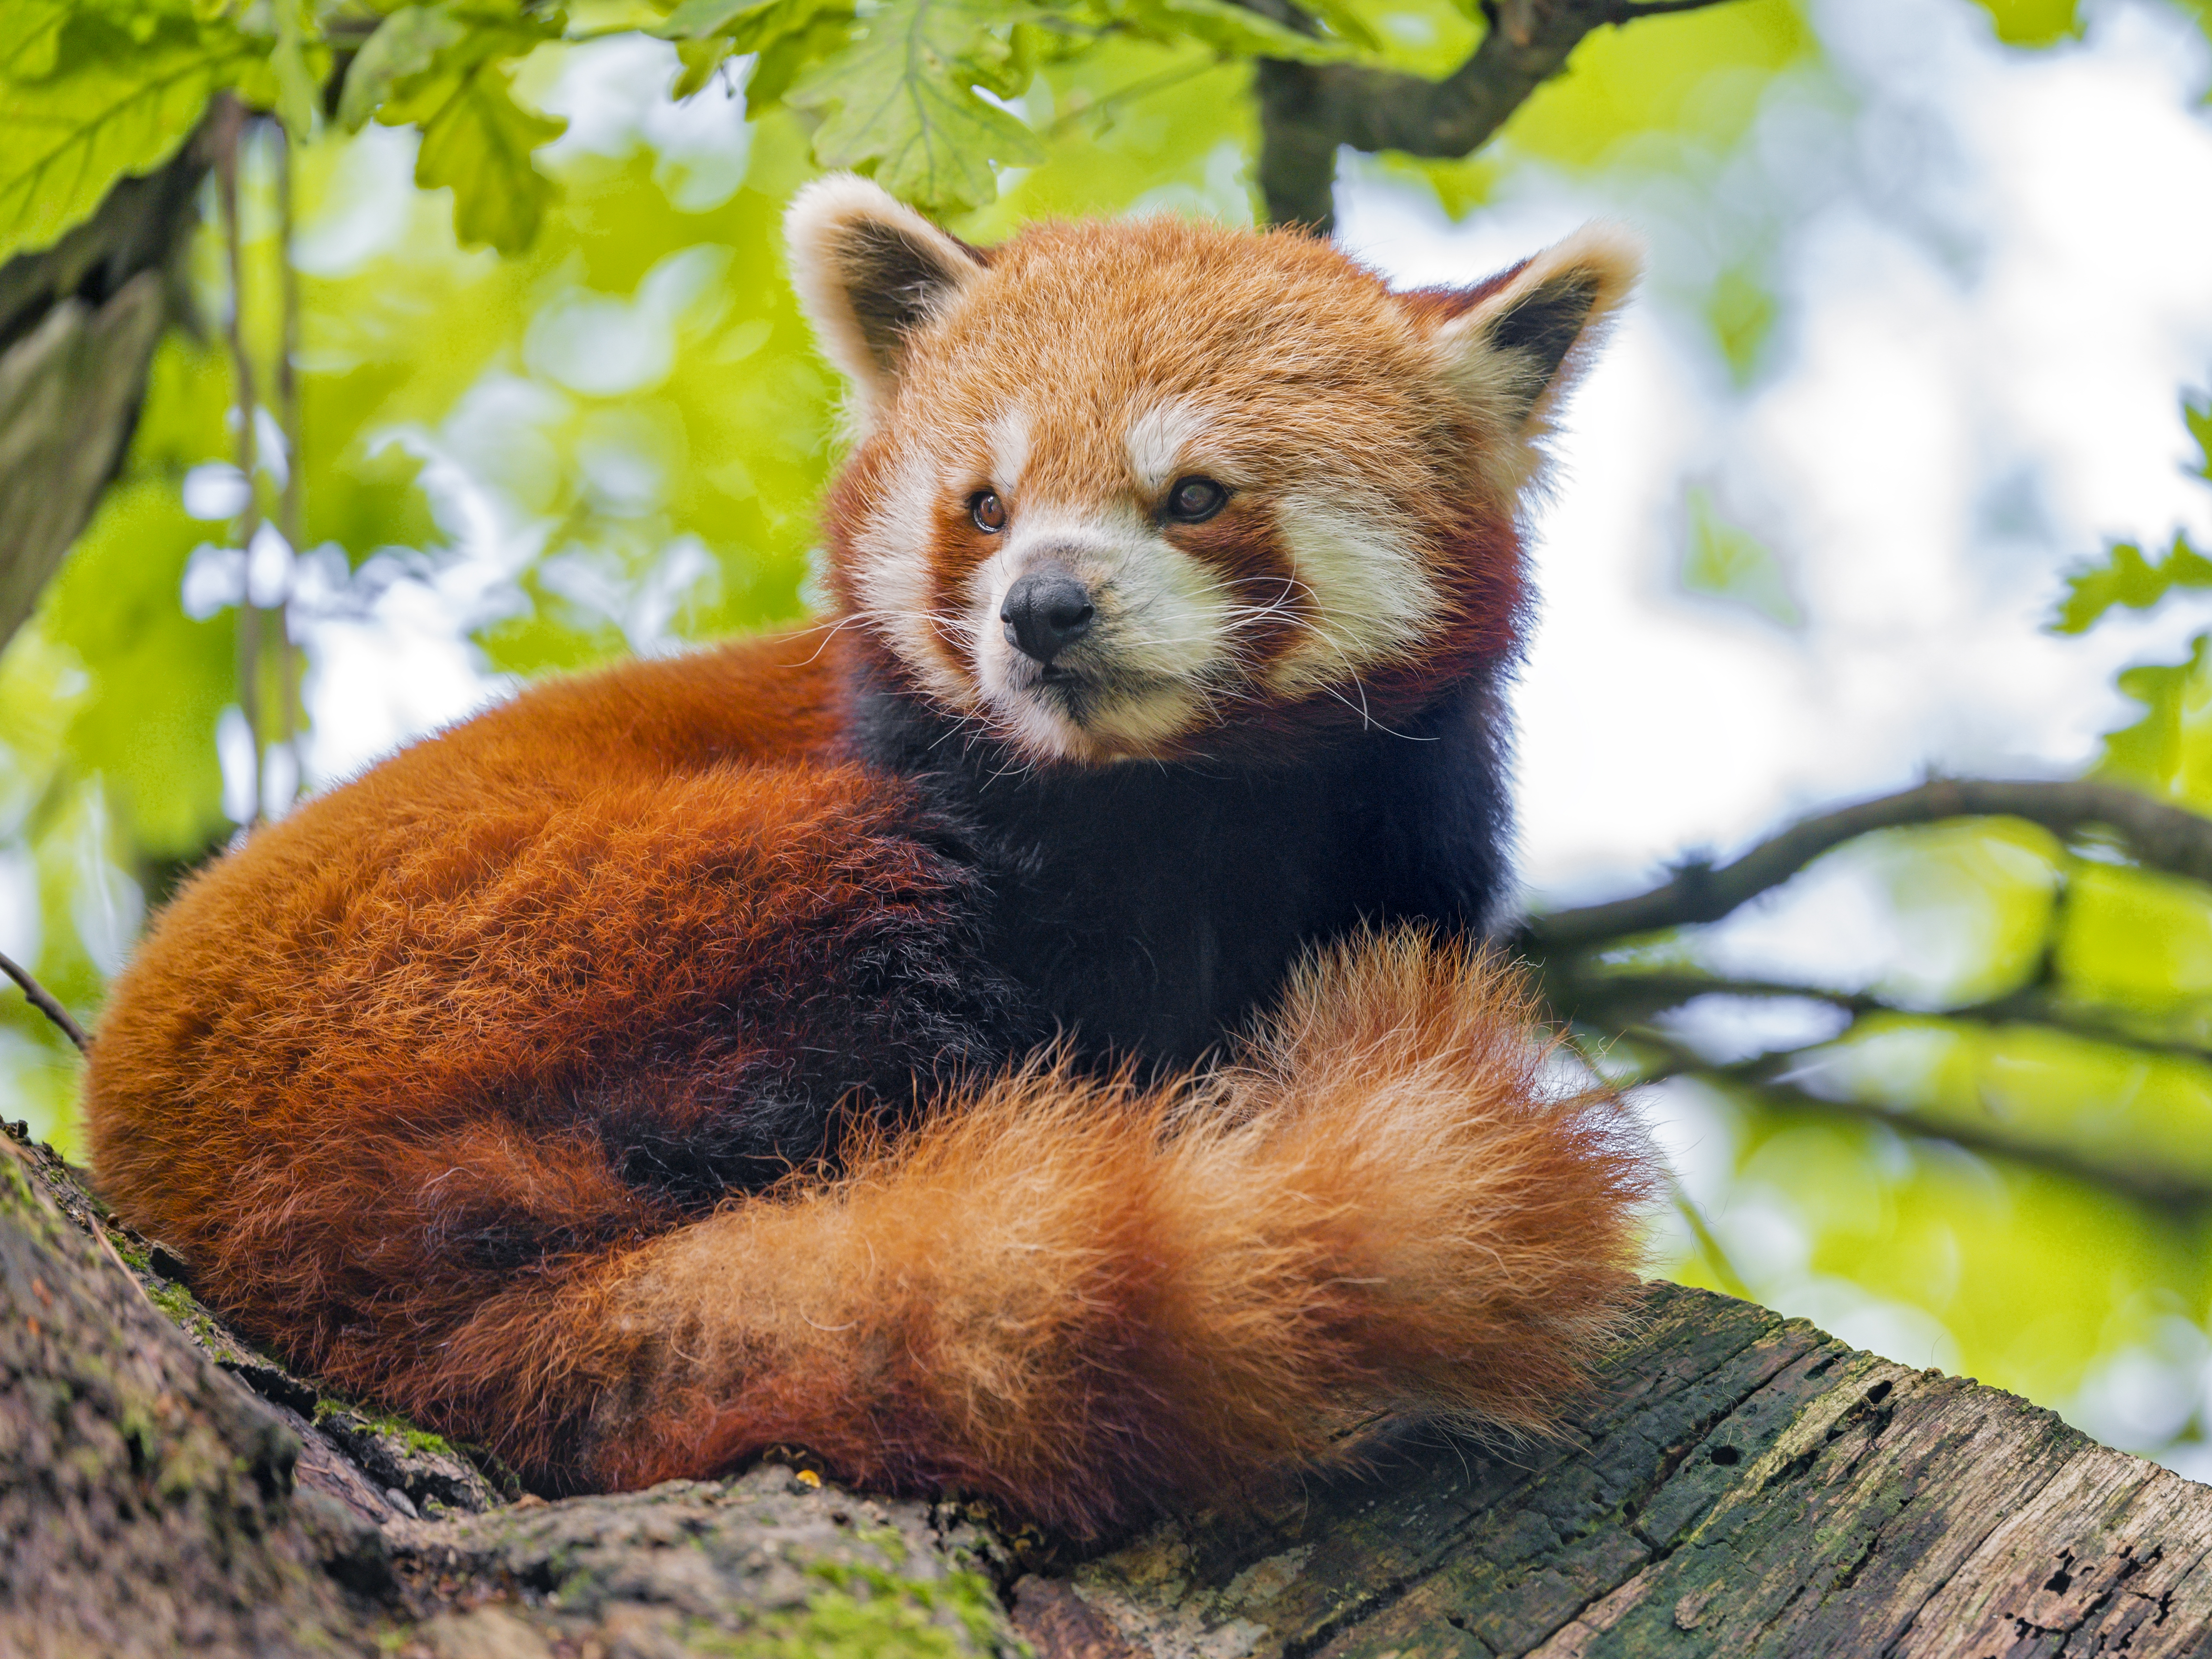 110884 download wallpaper Animals, Red Panda, Panda, Sight, Opinion, Animal, Wood, Tree screensavers and pictures for free